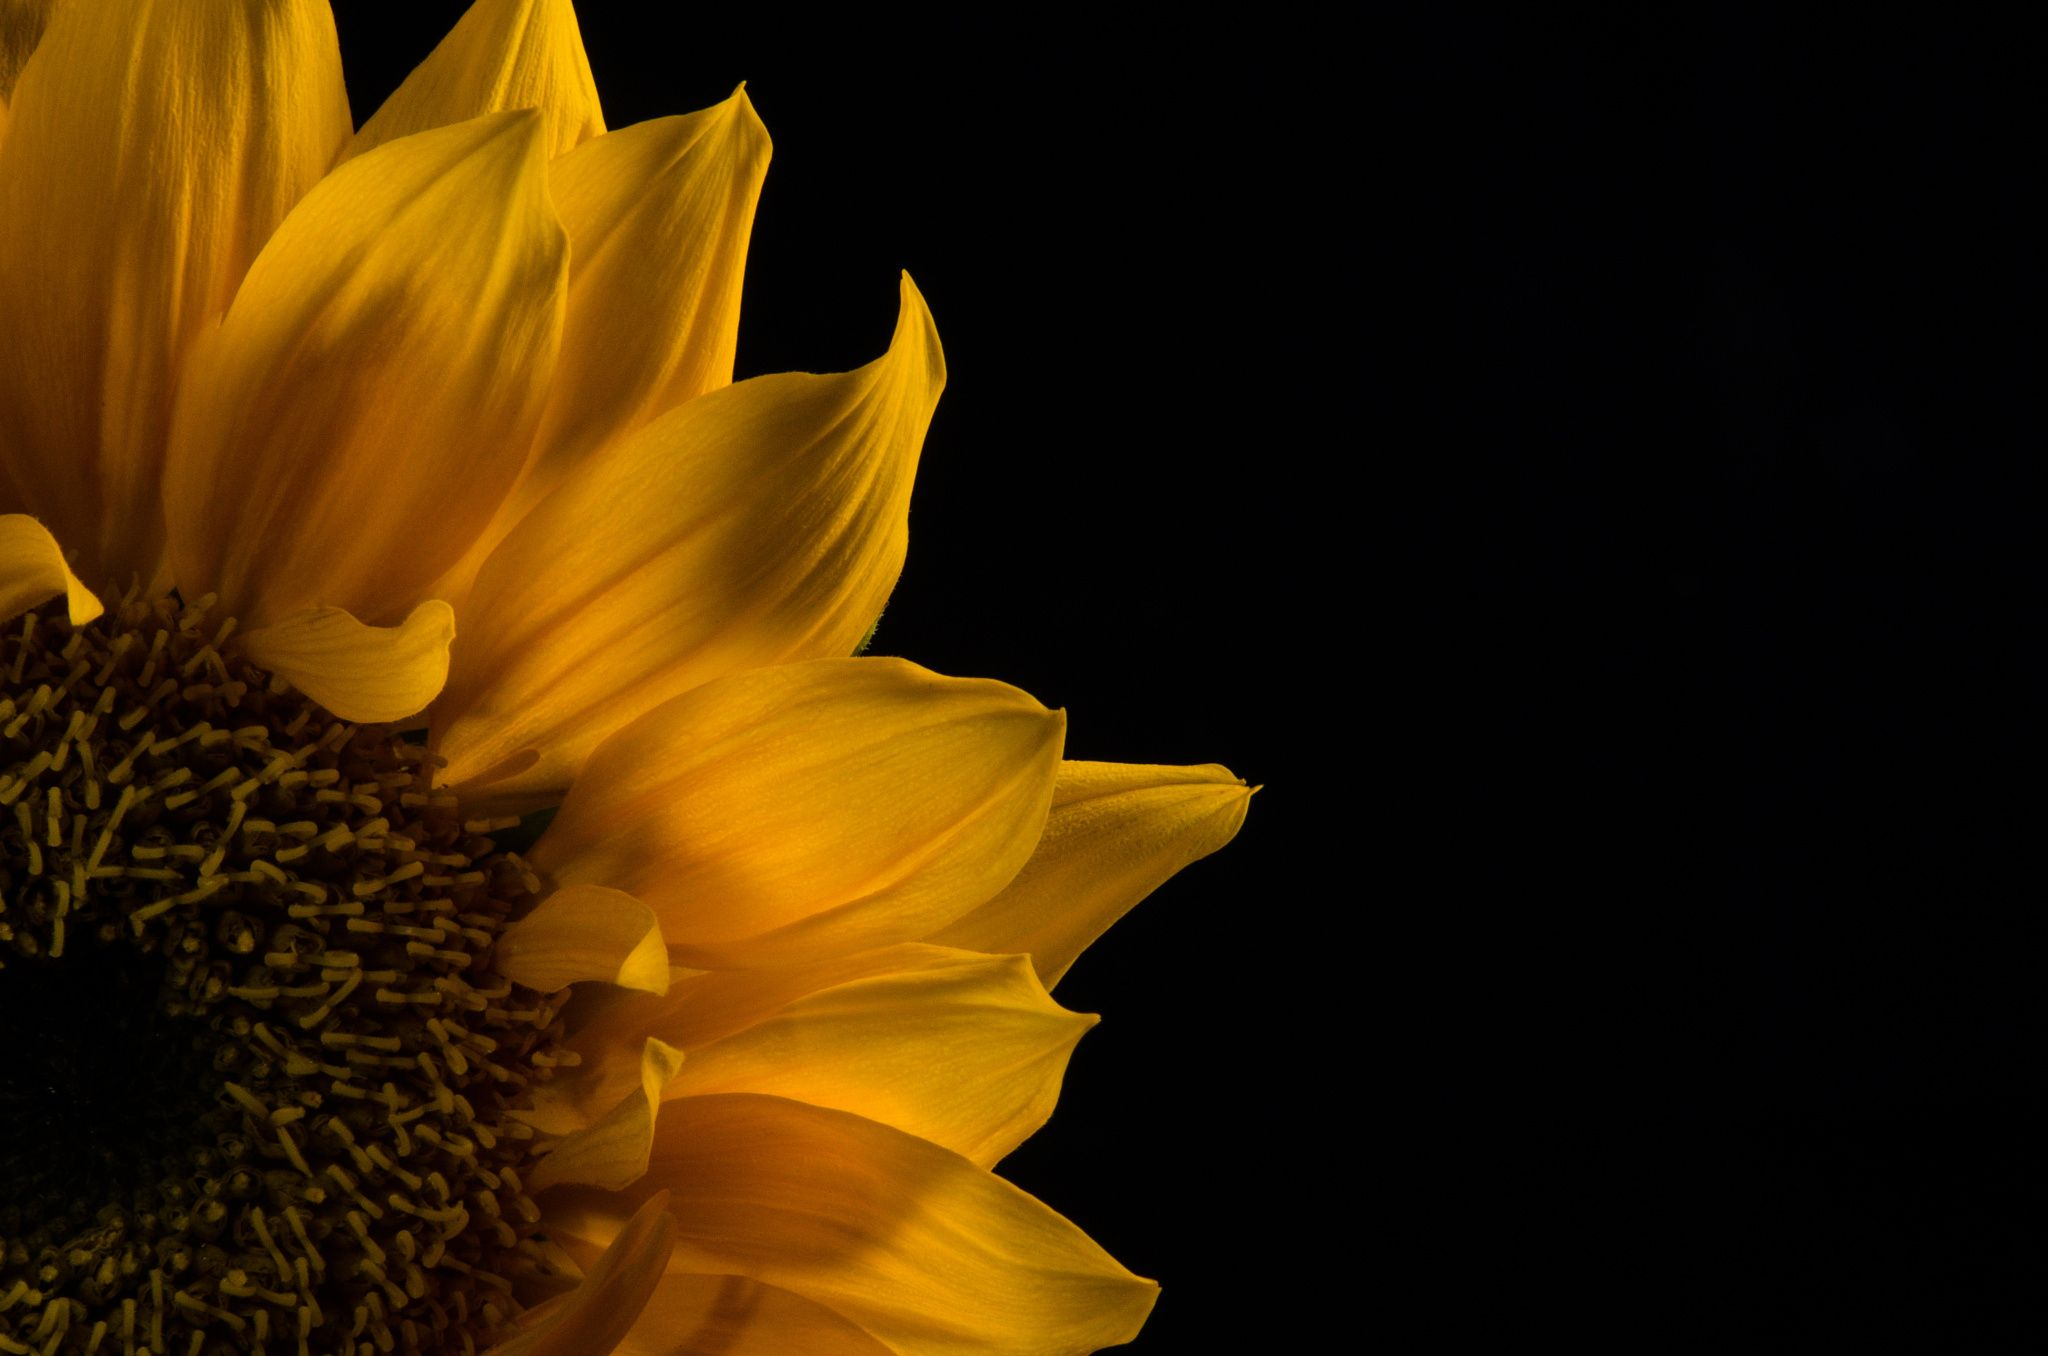 Sunflower in Corner by PI Photography and Fine Art - Delaware Photographer on 500px